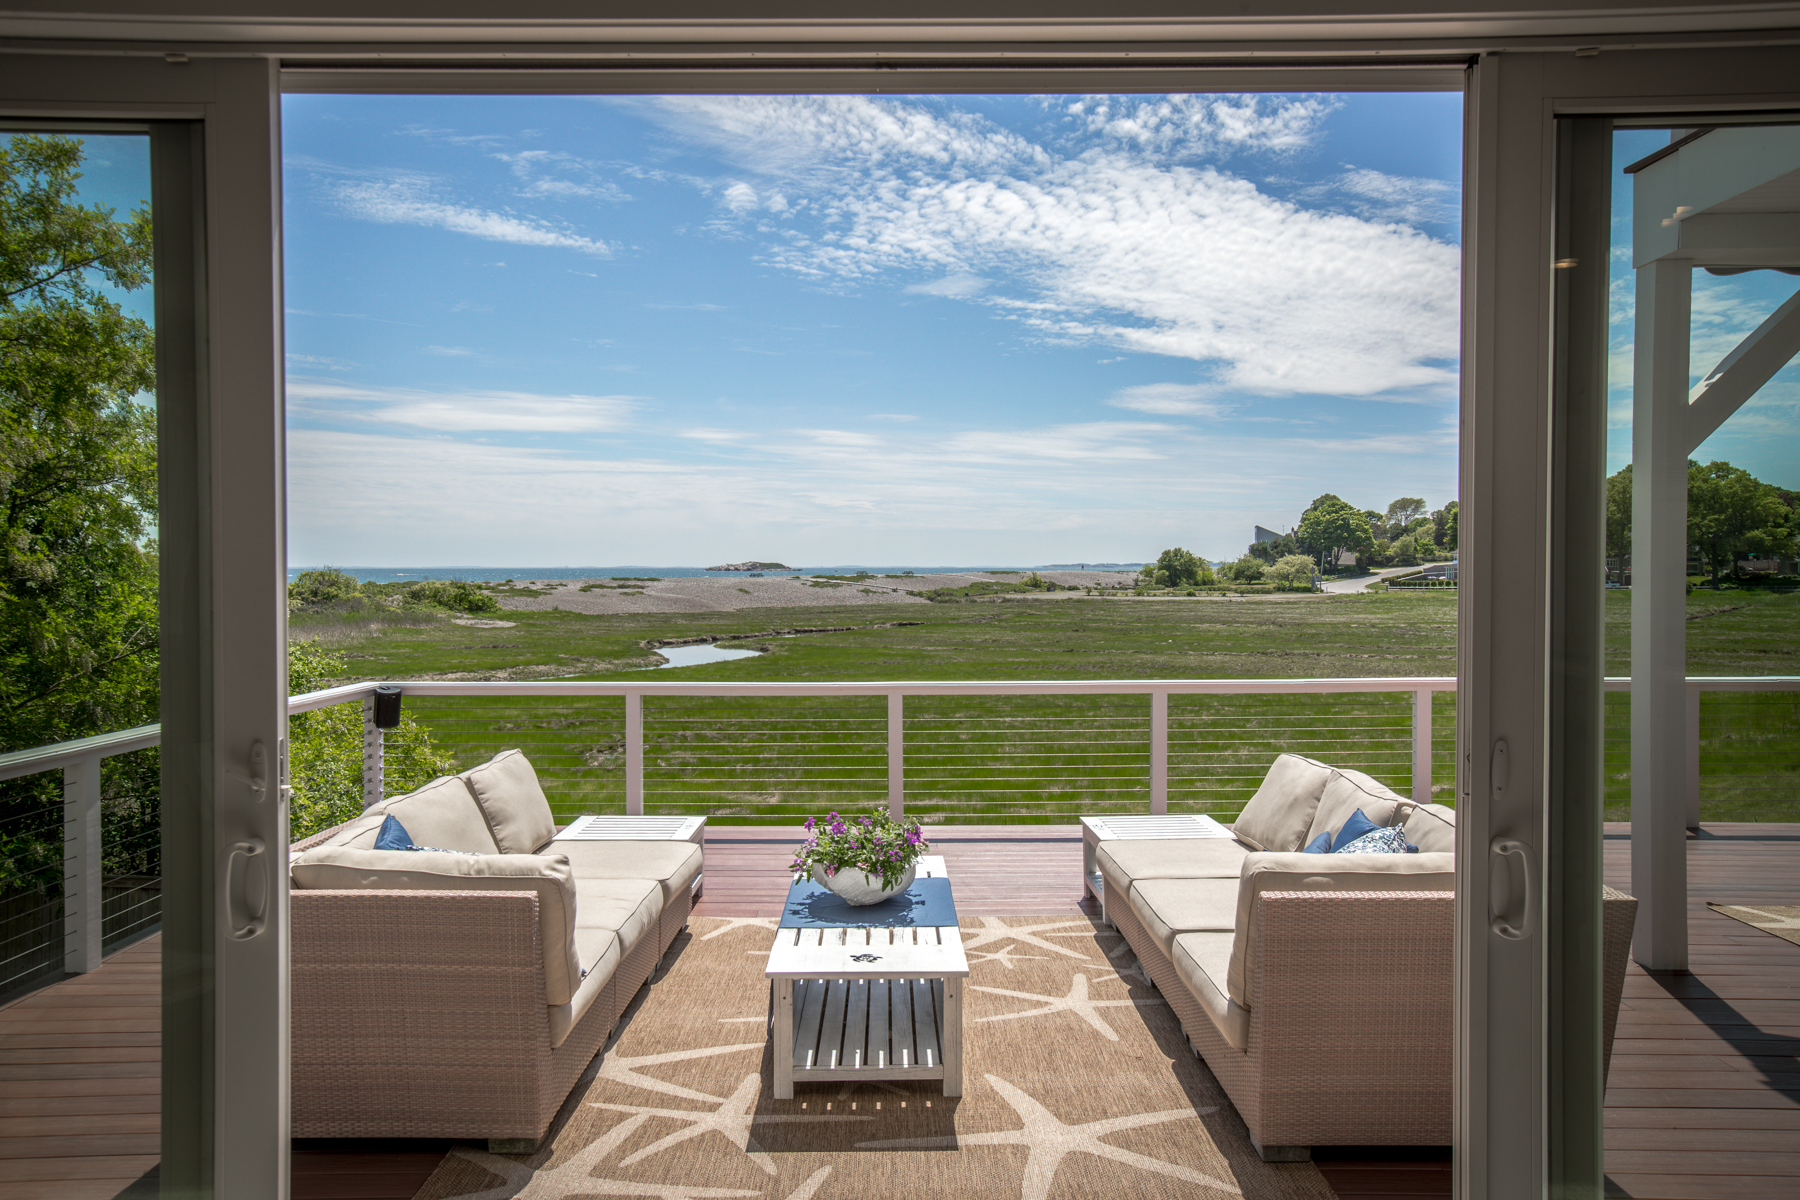 Single Family Home for Sale at Spectacular Seaside Contemporary 75 Beach Street Marblehead, Massachusetts 01945 United States